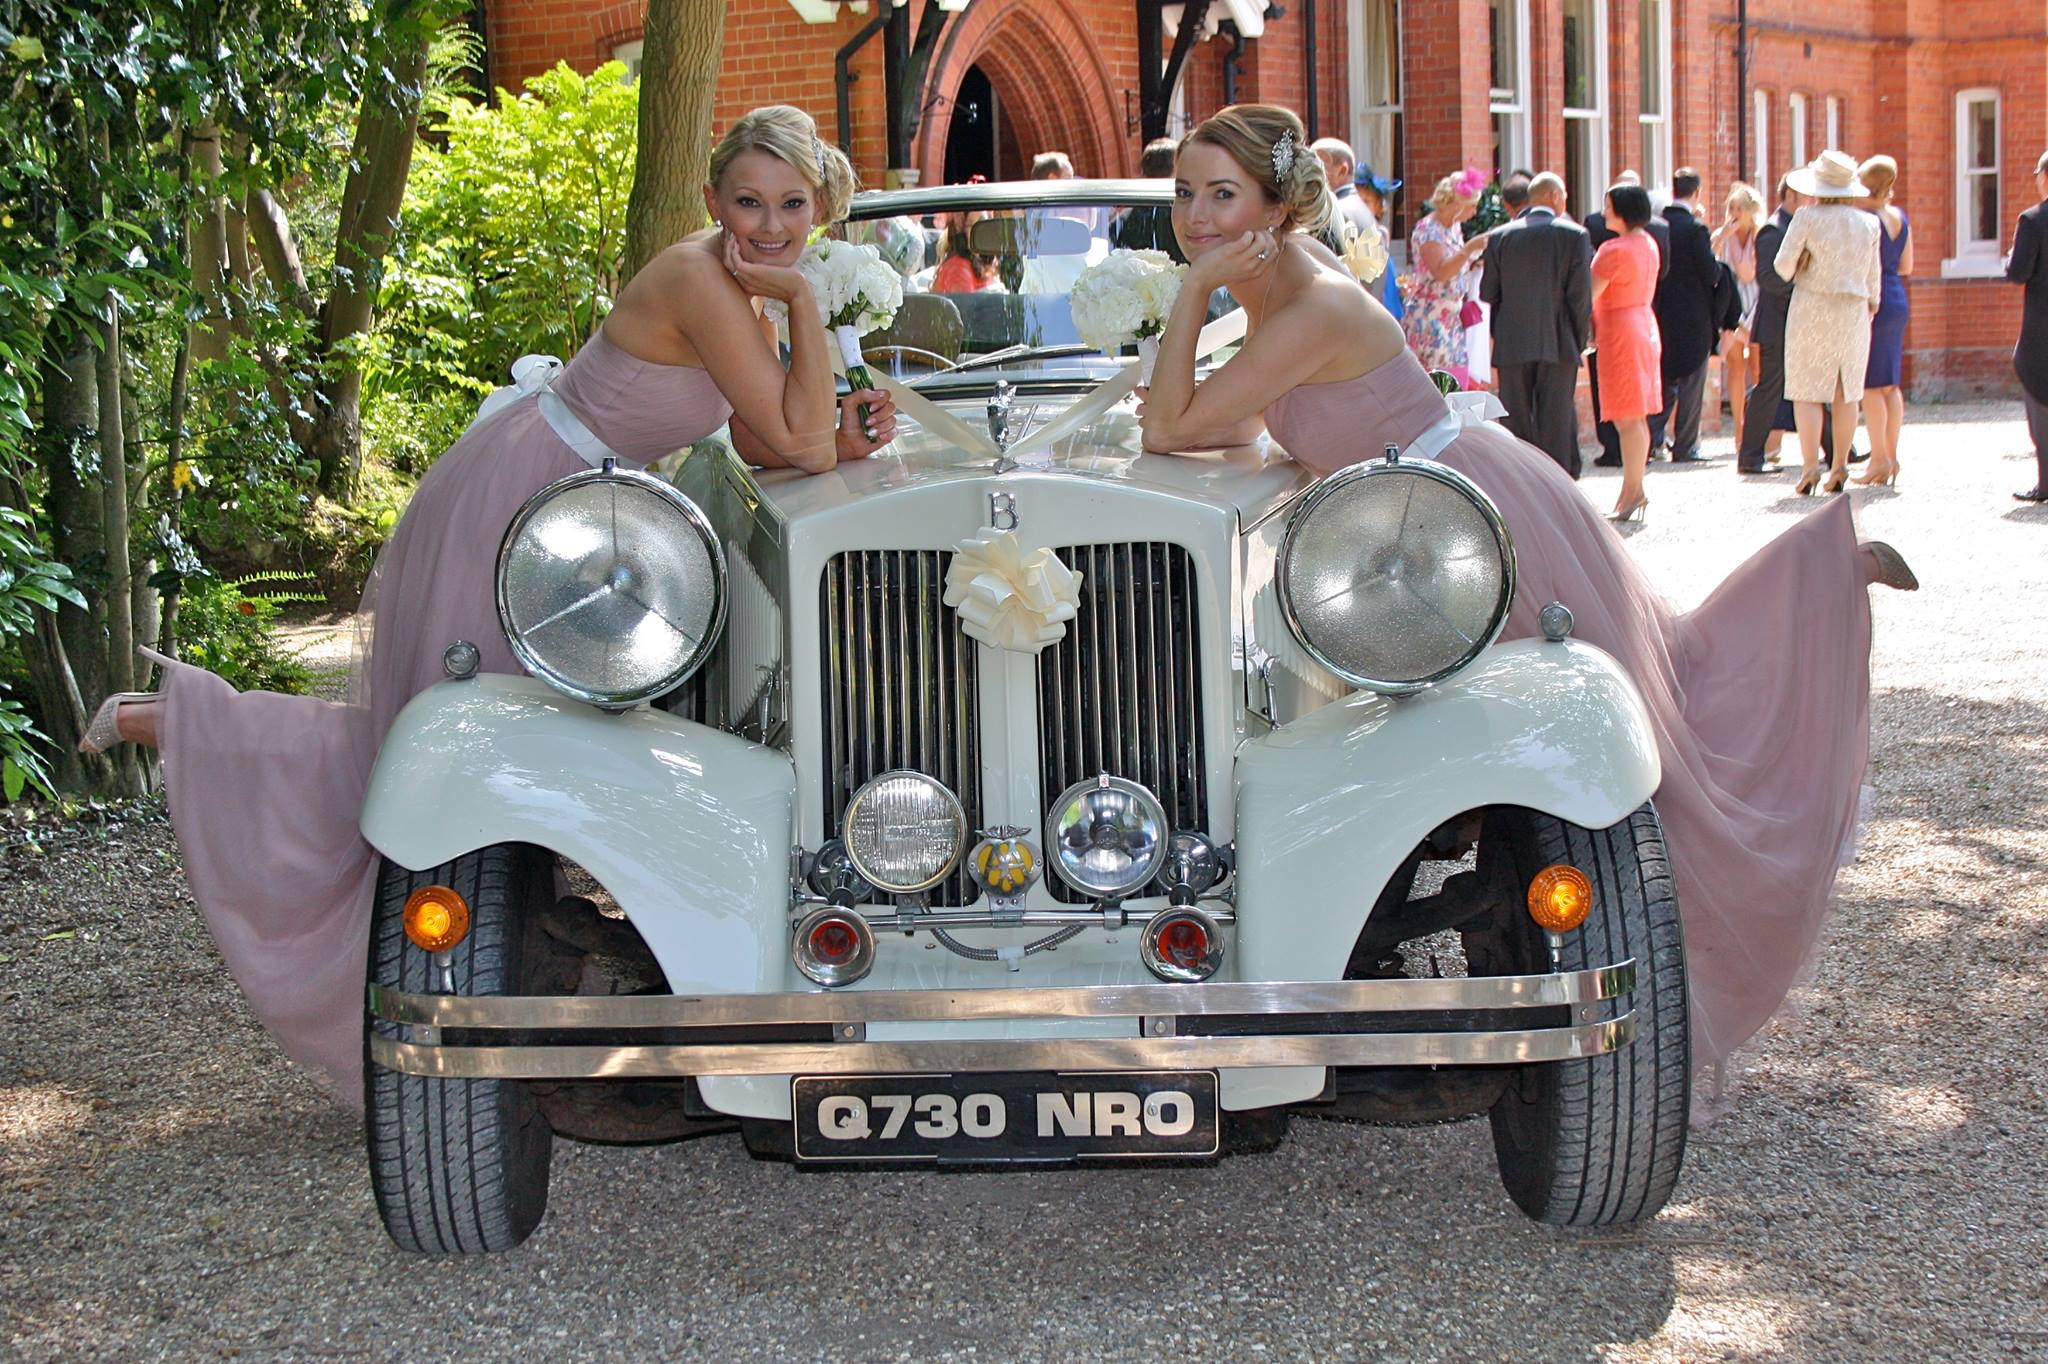 Beau our 1930's style Vintage Wedding Cars by Select limos